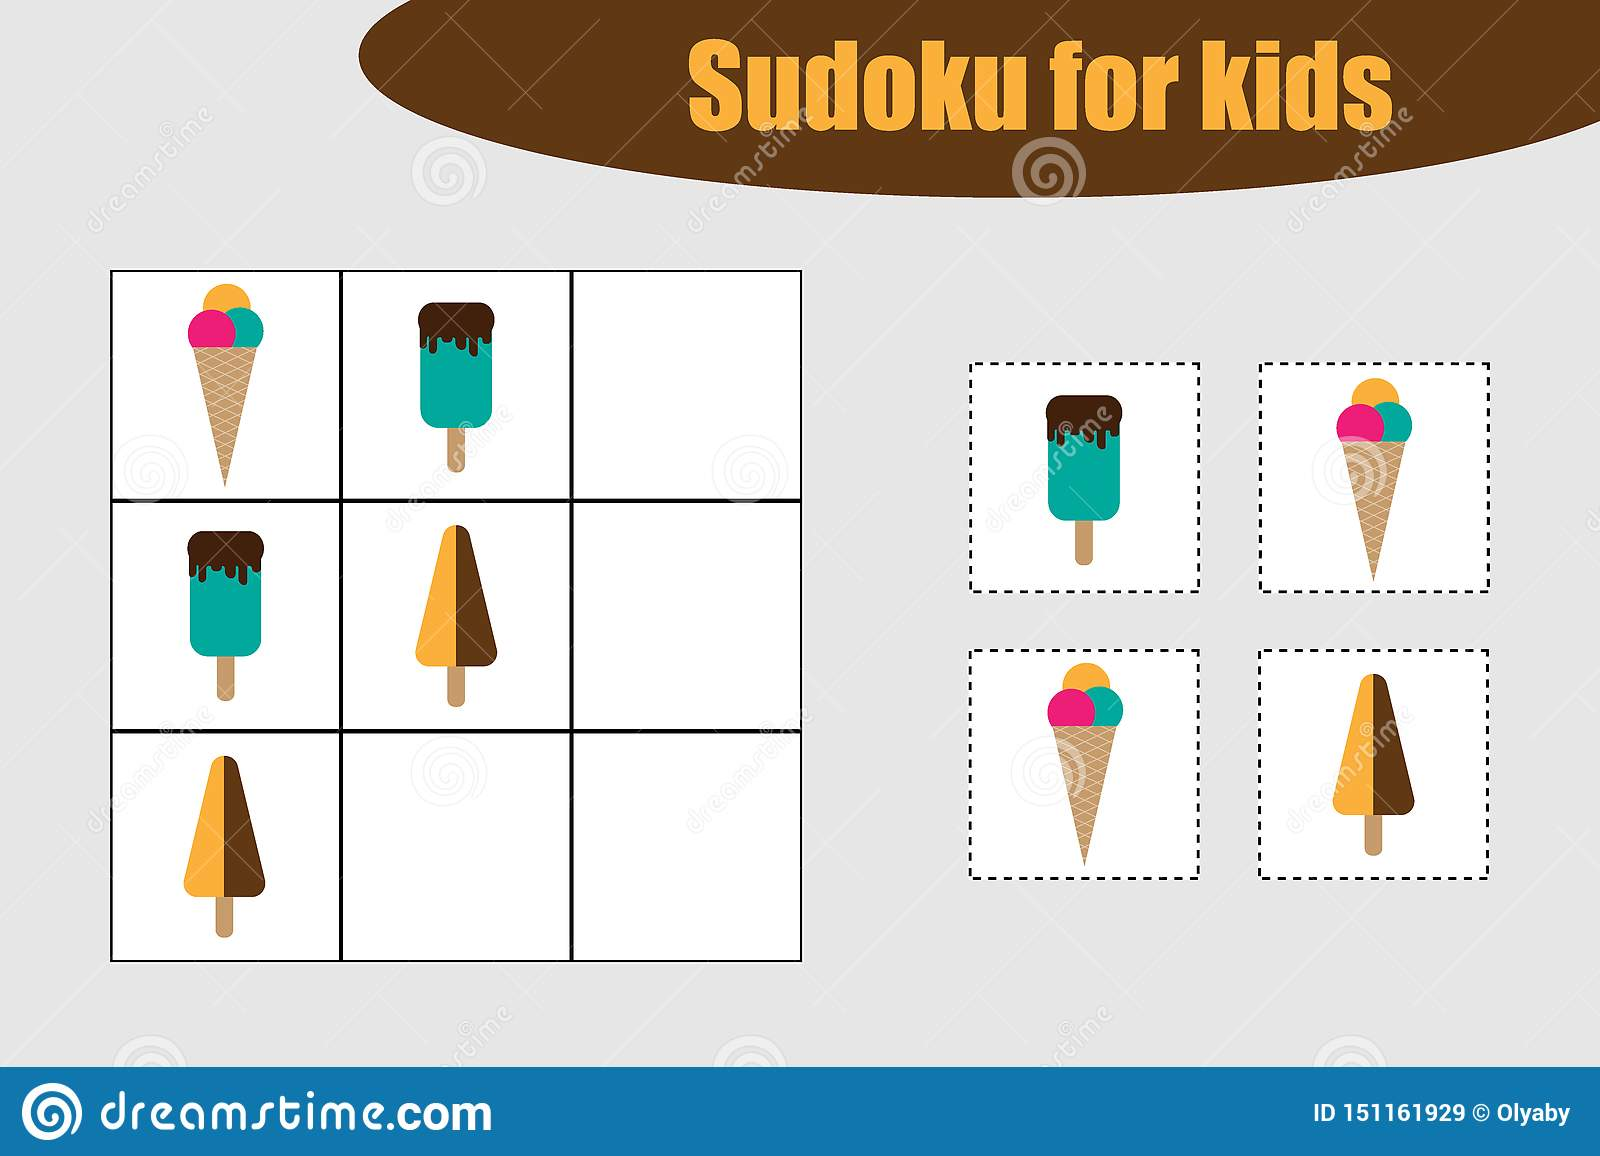 First Sudoku Game With Ice Creams Pictures For Children